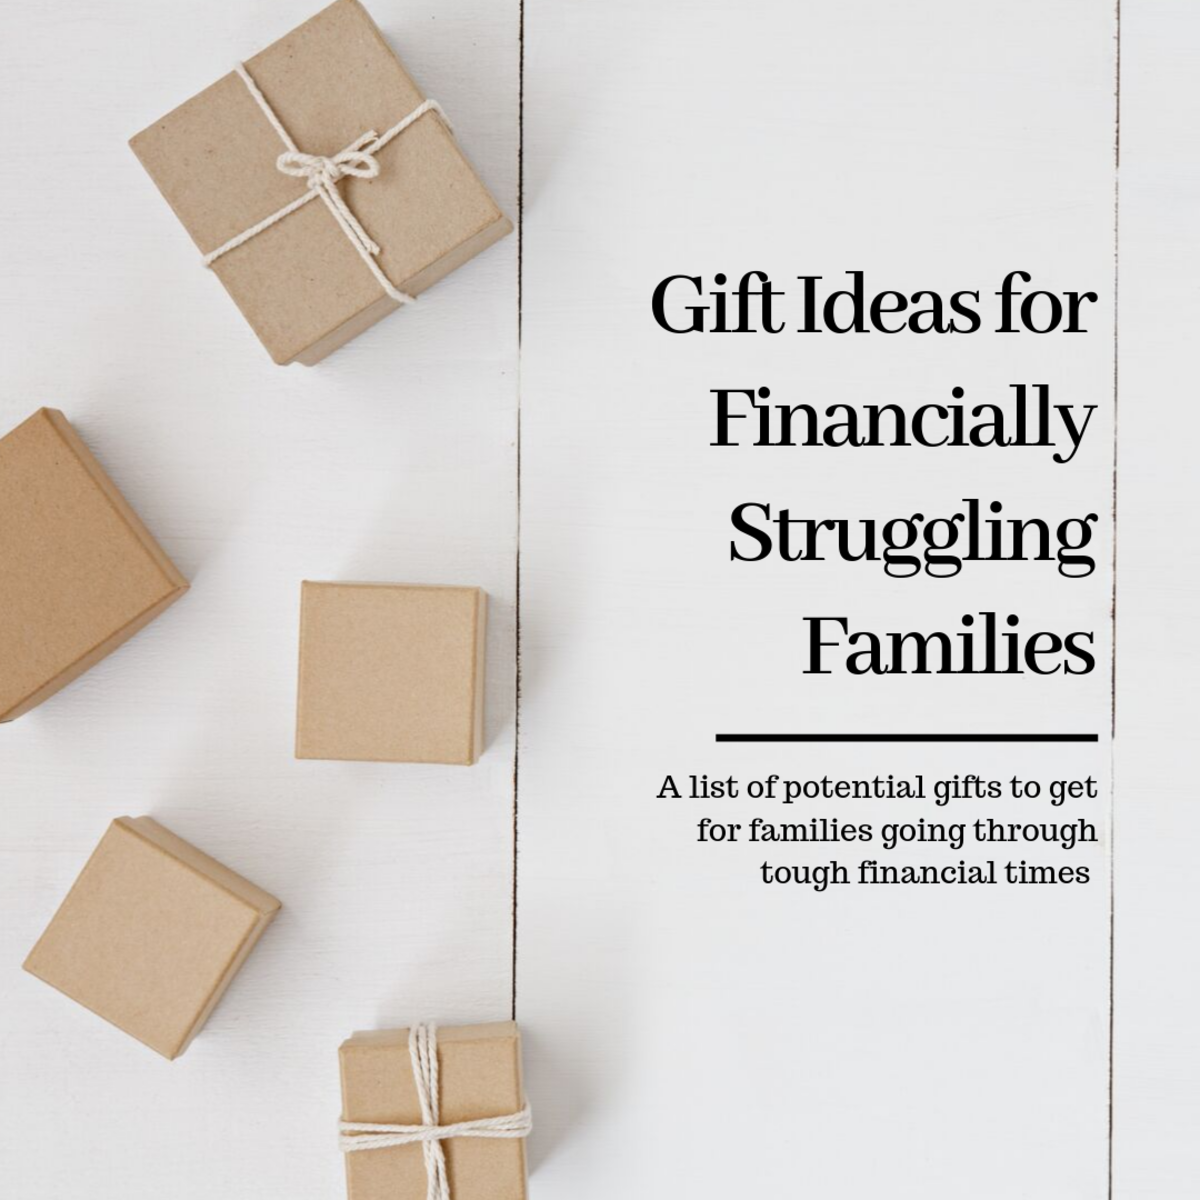 Best Holiday Gifts for Financially Struggling Families